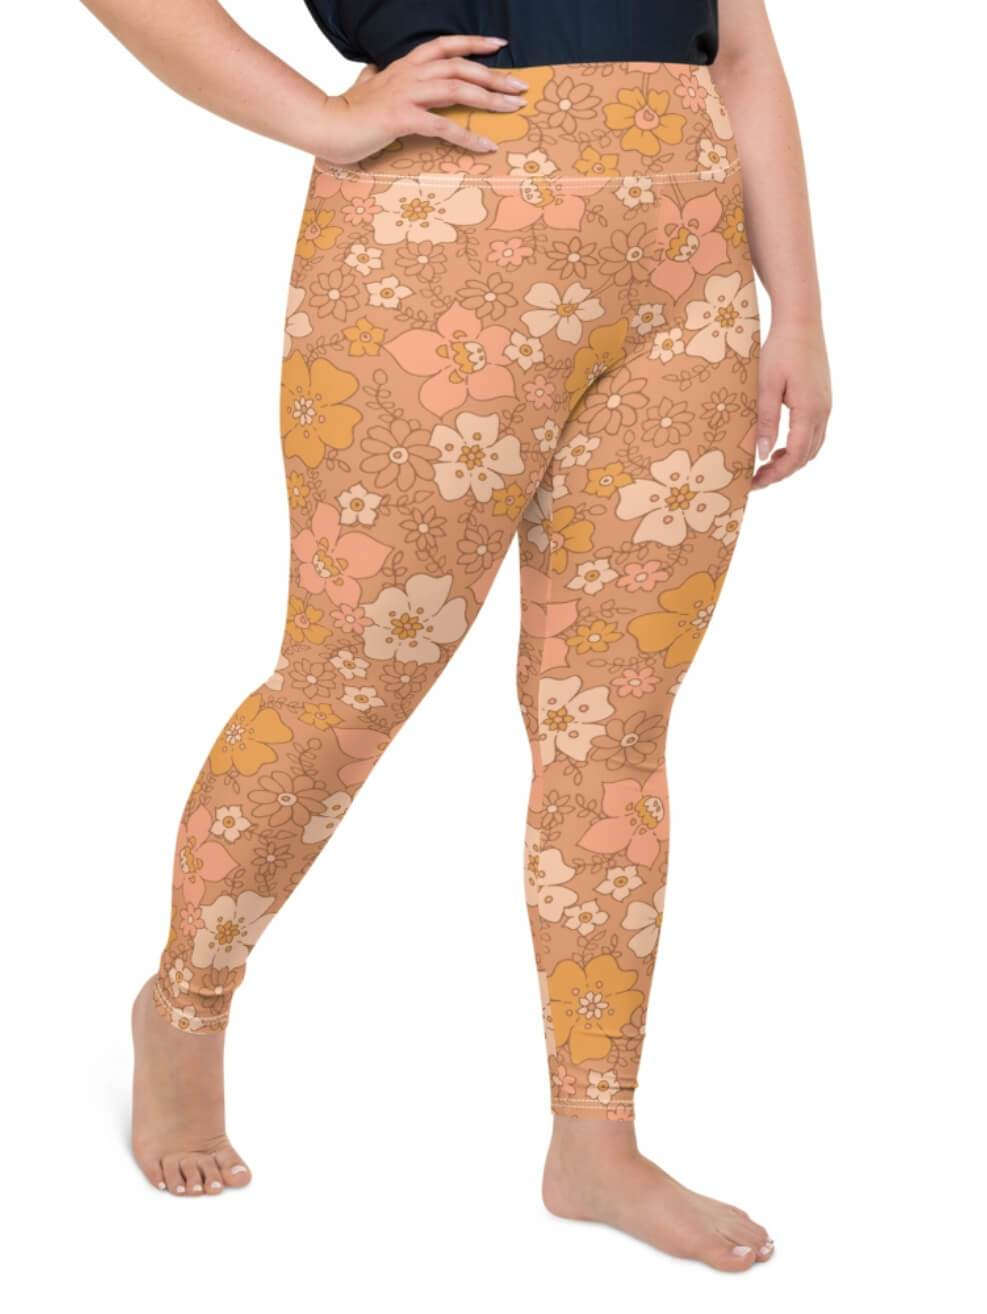 Plus Size Peachy Keen Leggings - Boho Buys